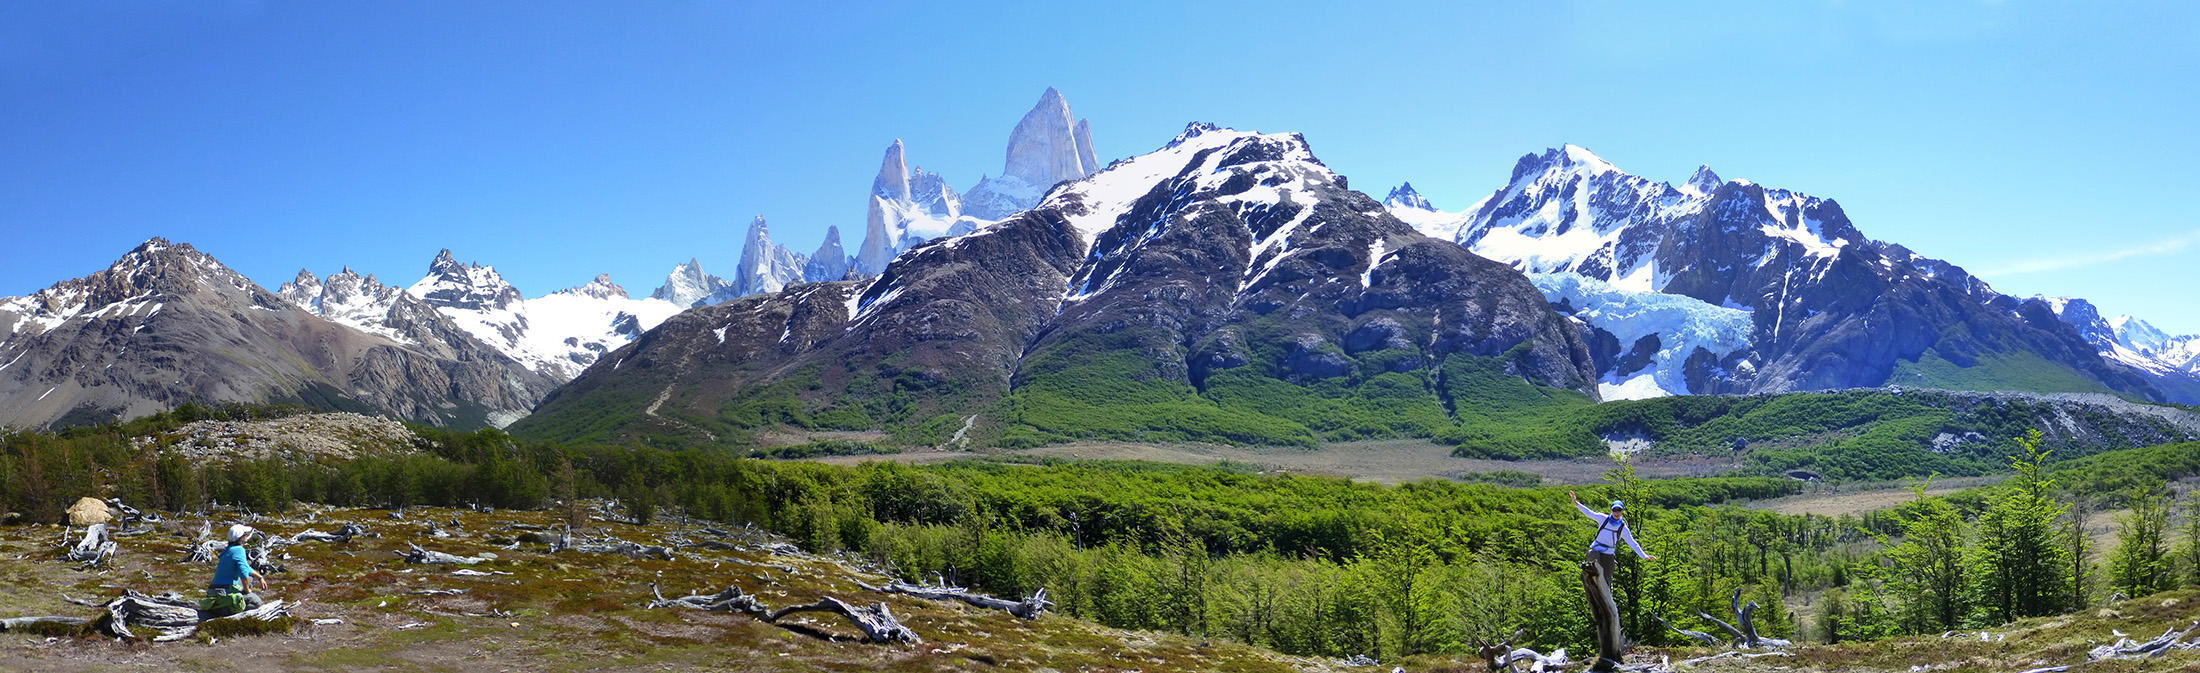 On our way to Fitz Roy